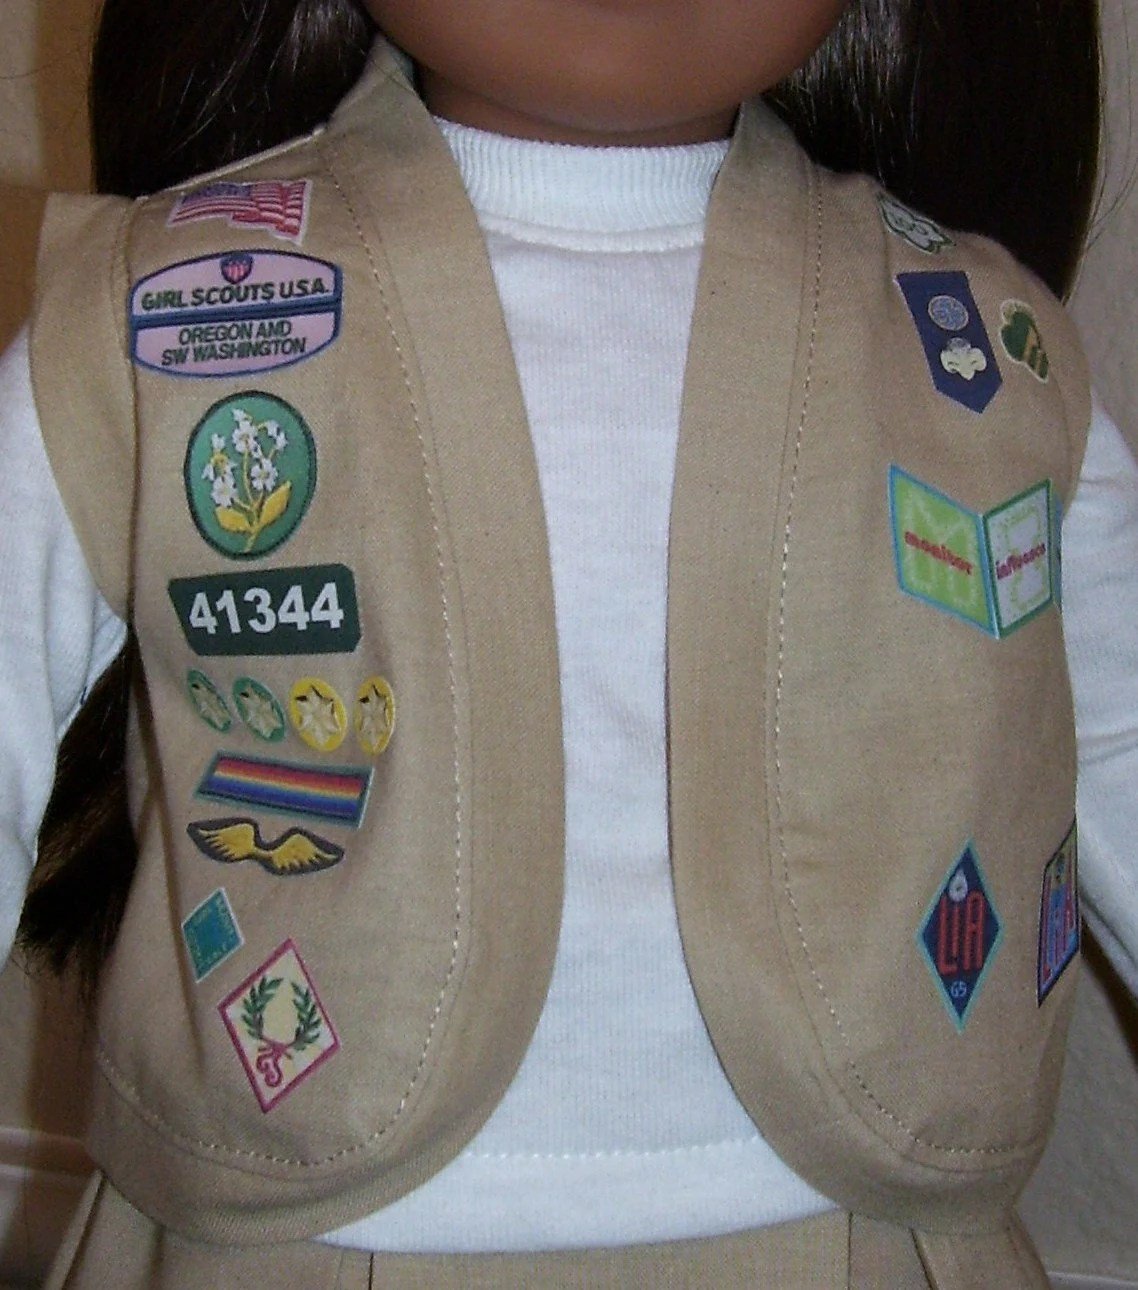 18 Inch Doll Clothes Cadette Girl Scout Vest Or Sash